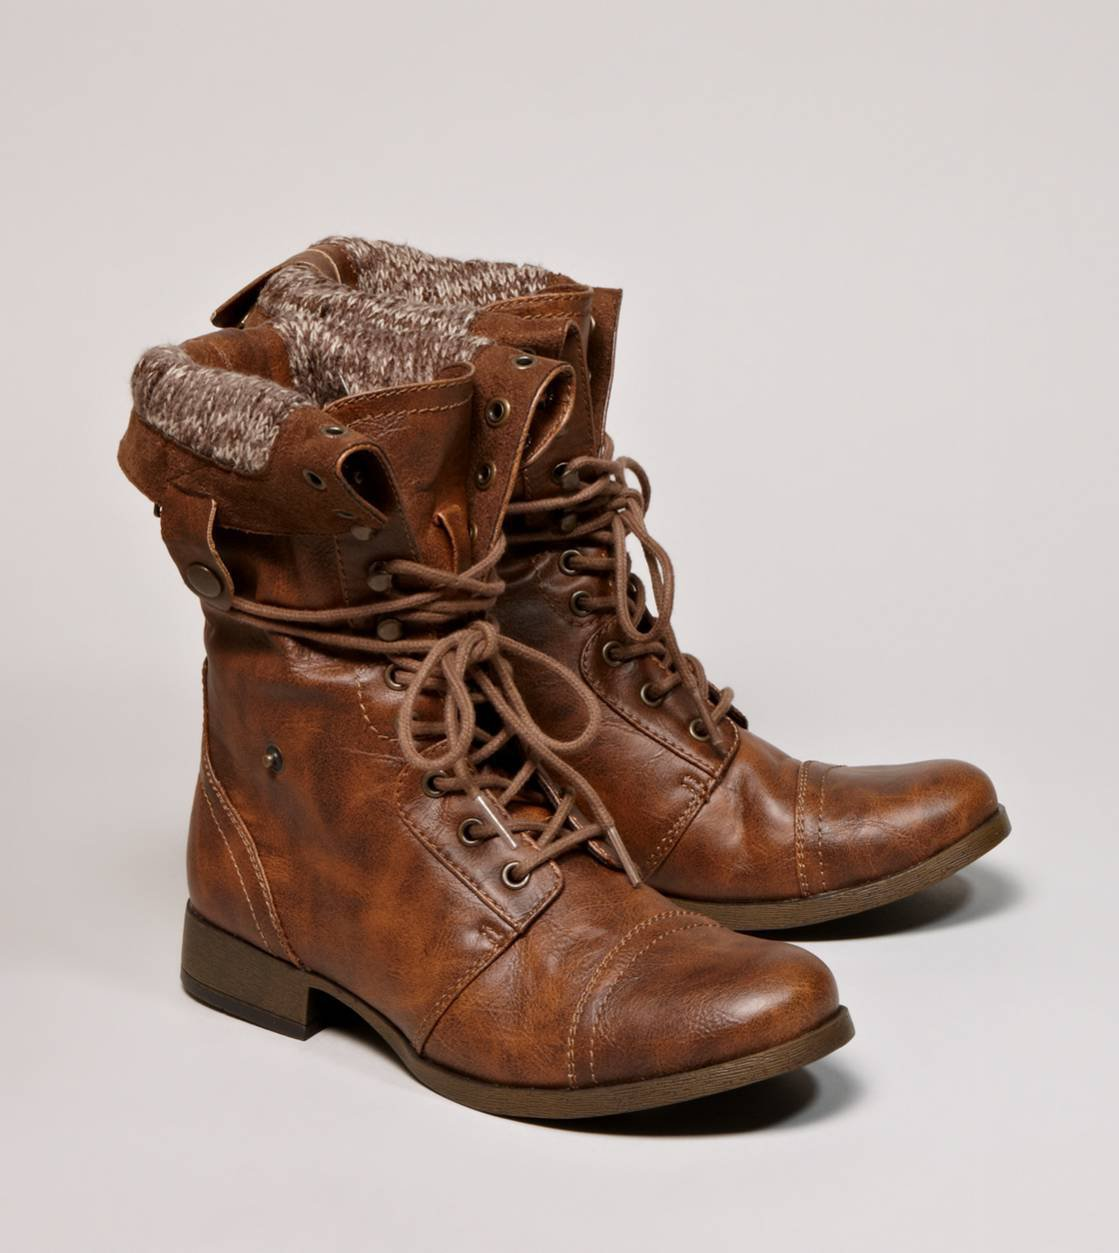 aeo lace up boot american eagle from american eagle